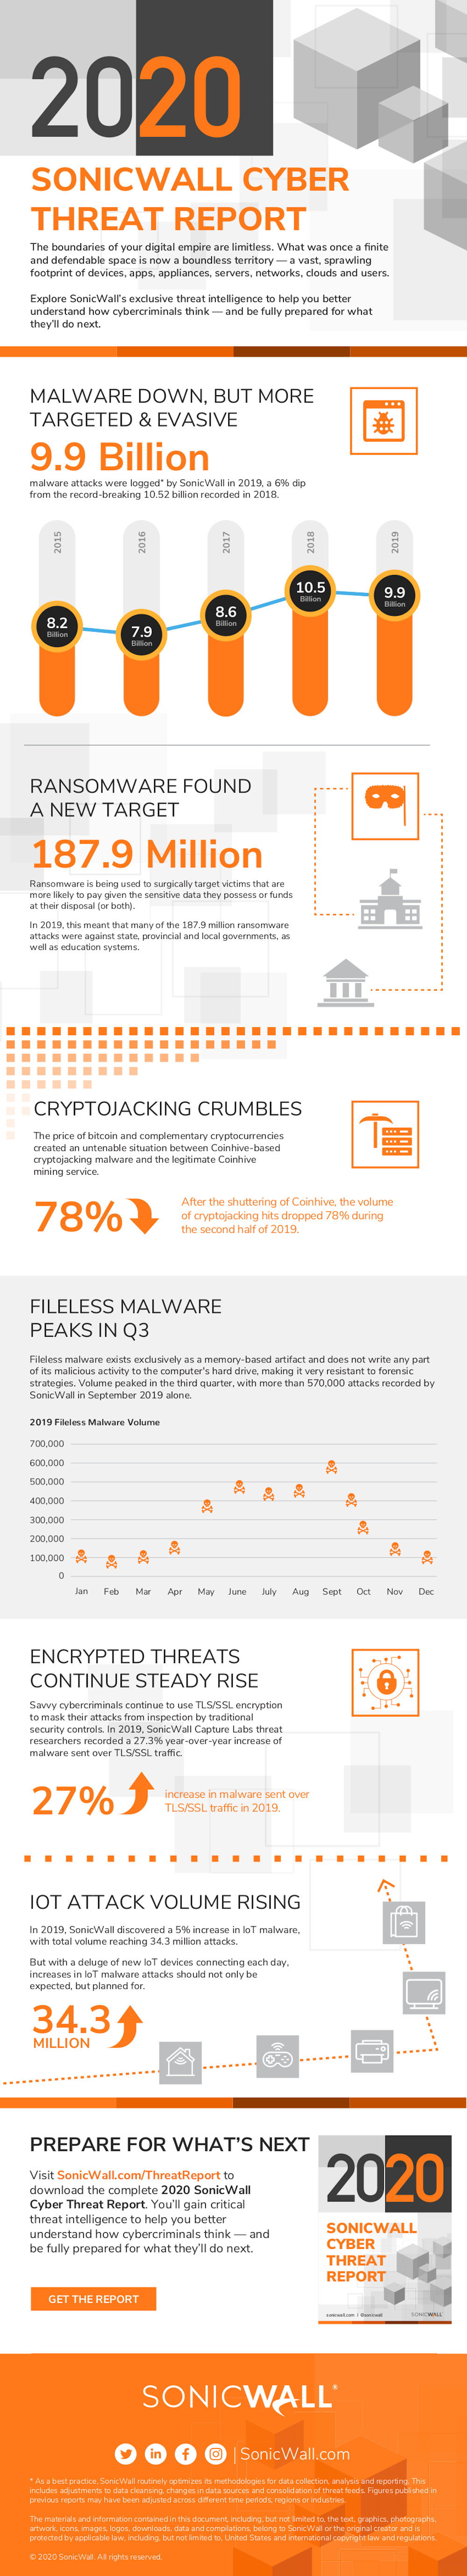 Infographic 2020 SonicWall Cyber Threat Report